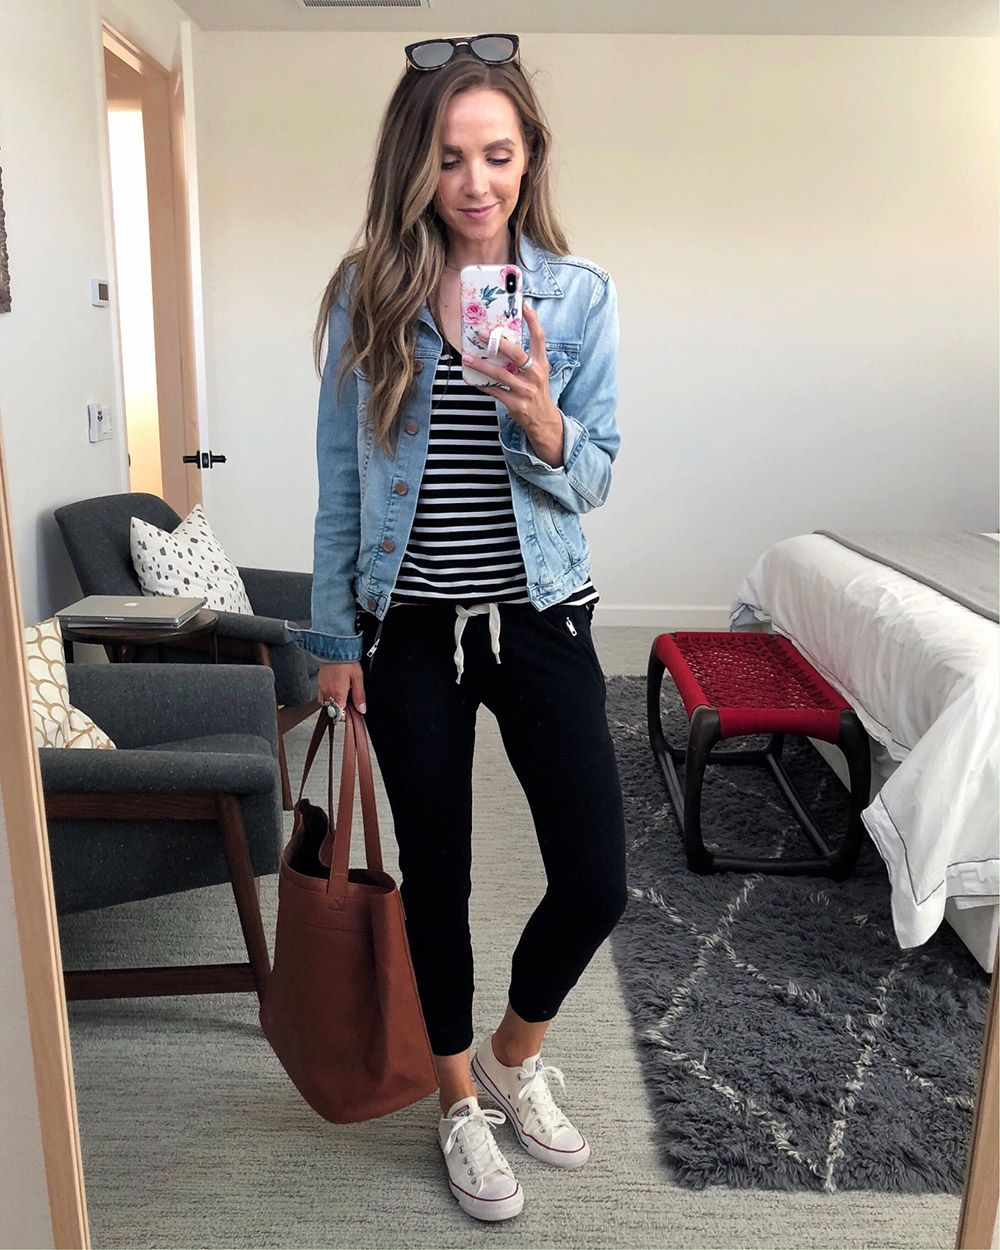 Instagram Roundup Weekend Sales Merrick S Art How To Wear Denim Jacket How To Wear Joggers Jogger Outfit Casual [ 1250 x 1000 Pixel ]